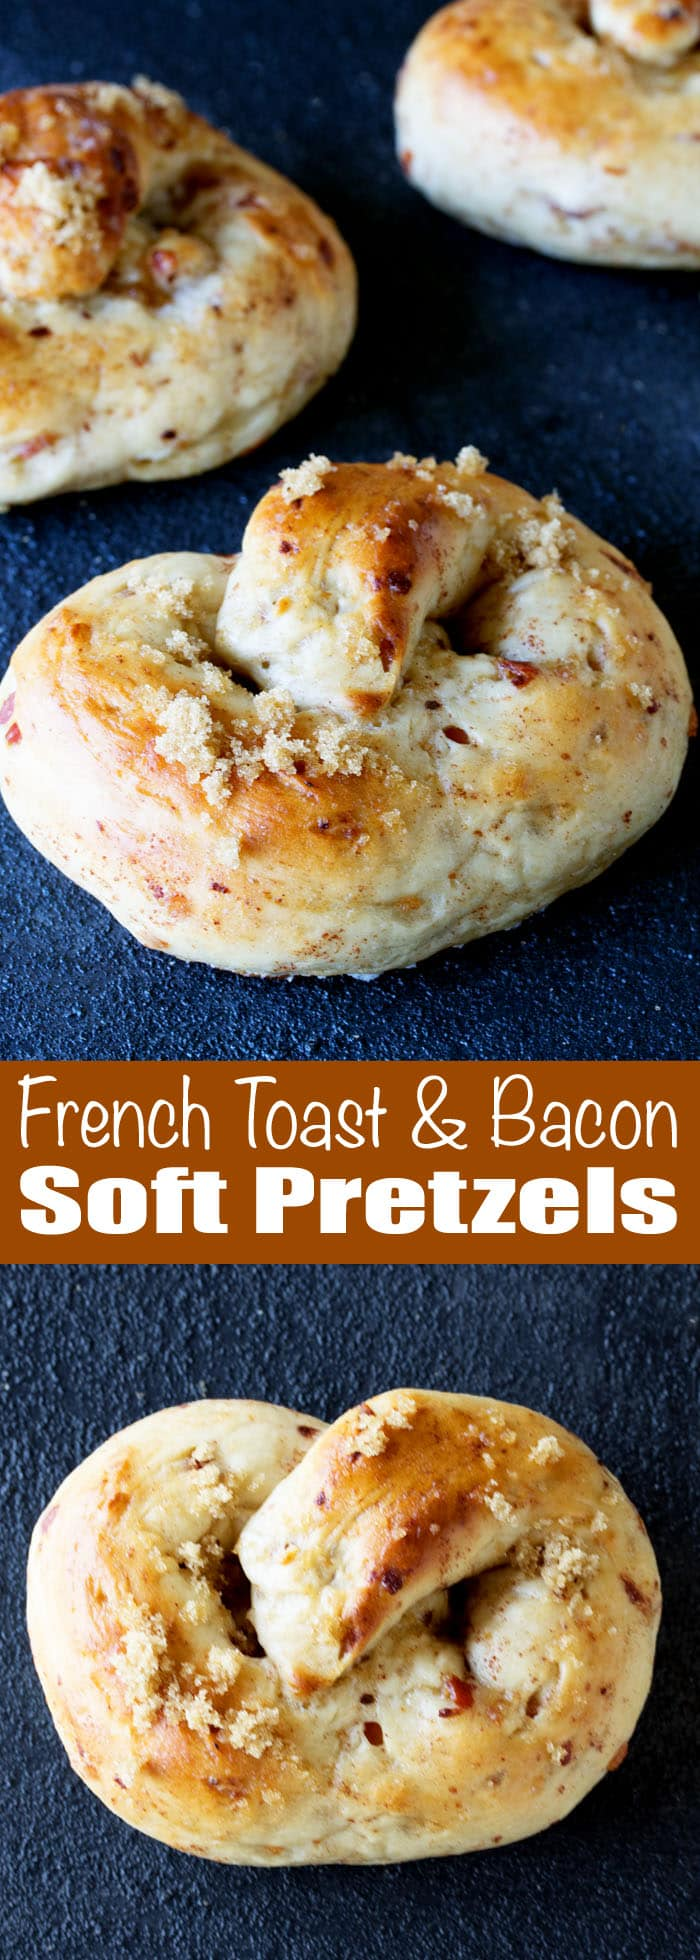 This is a fun twist on the classic soft pretzel turning this twisted bread into a breakfast delight. French Toast and Bacon Soft Pretzels.